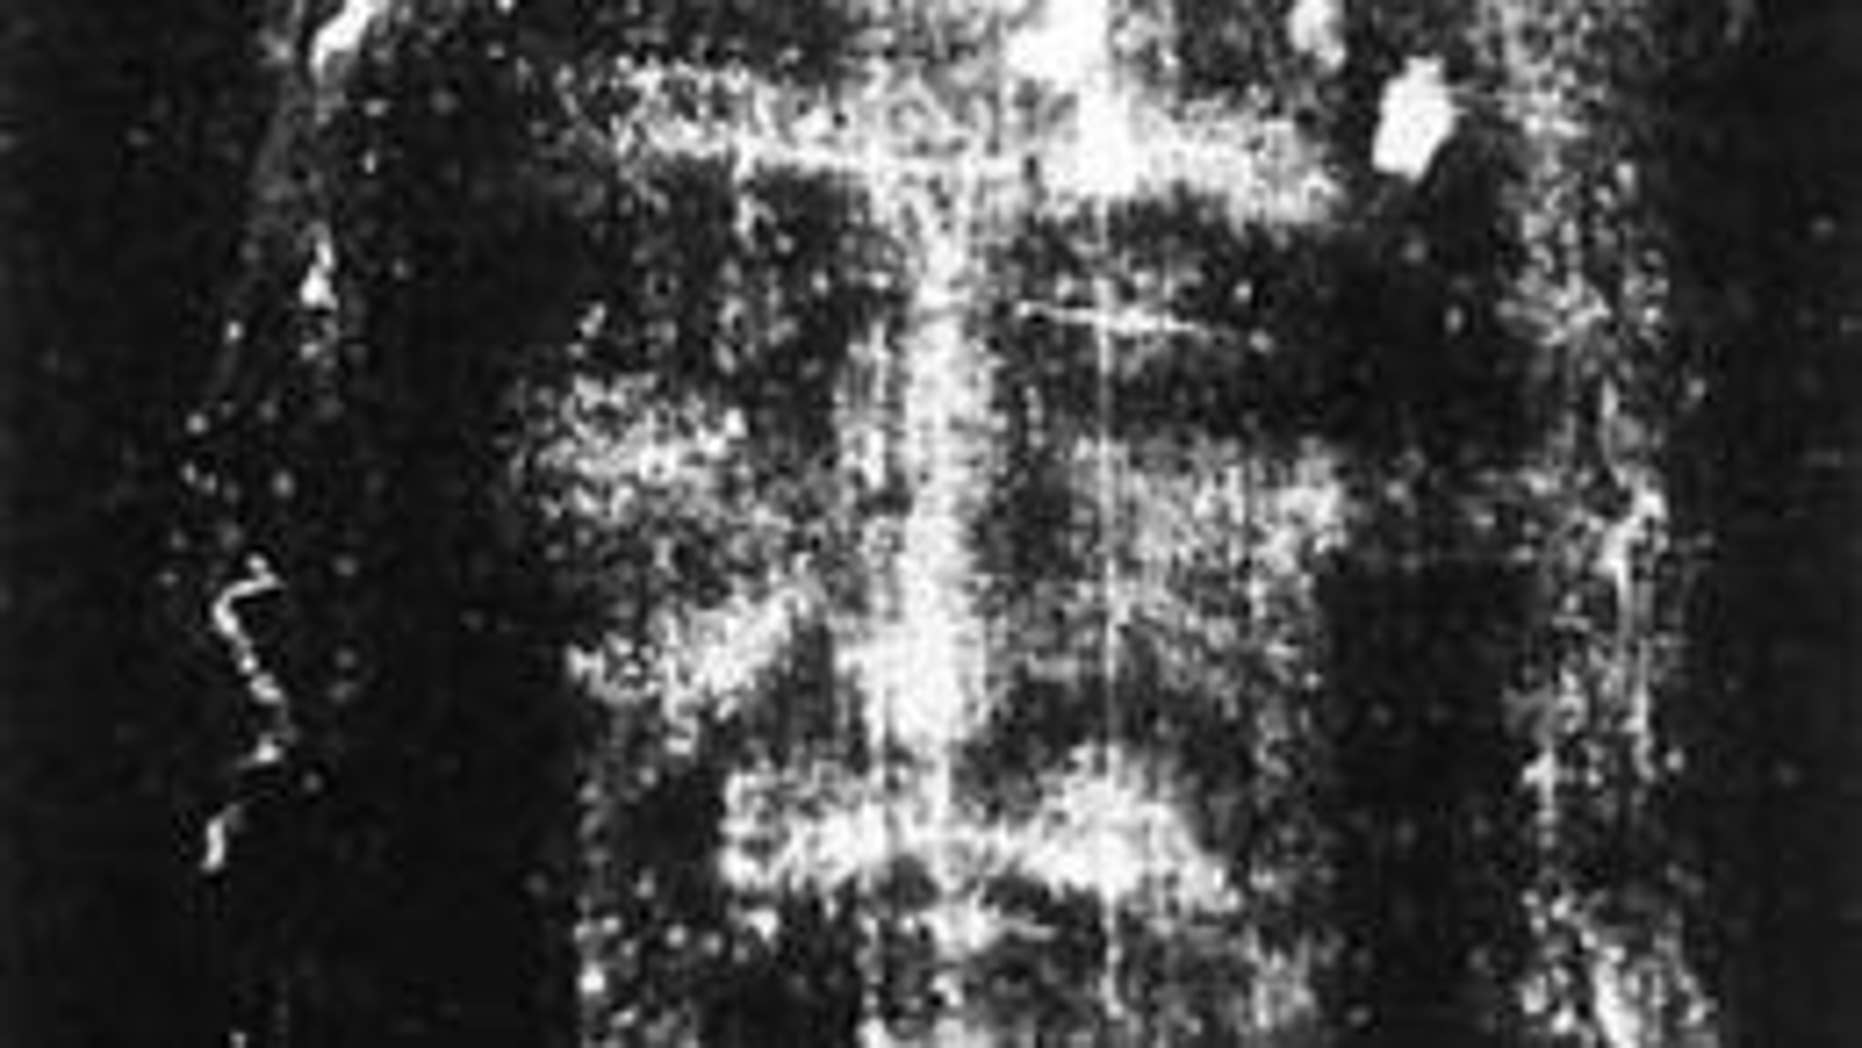 Shroud of turin carbon dating controversy over american